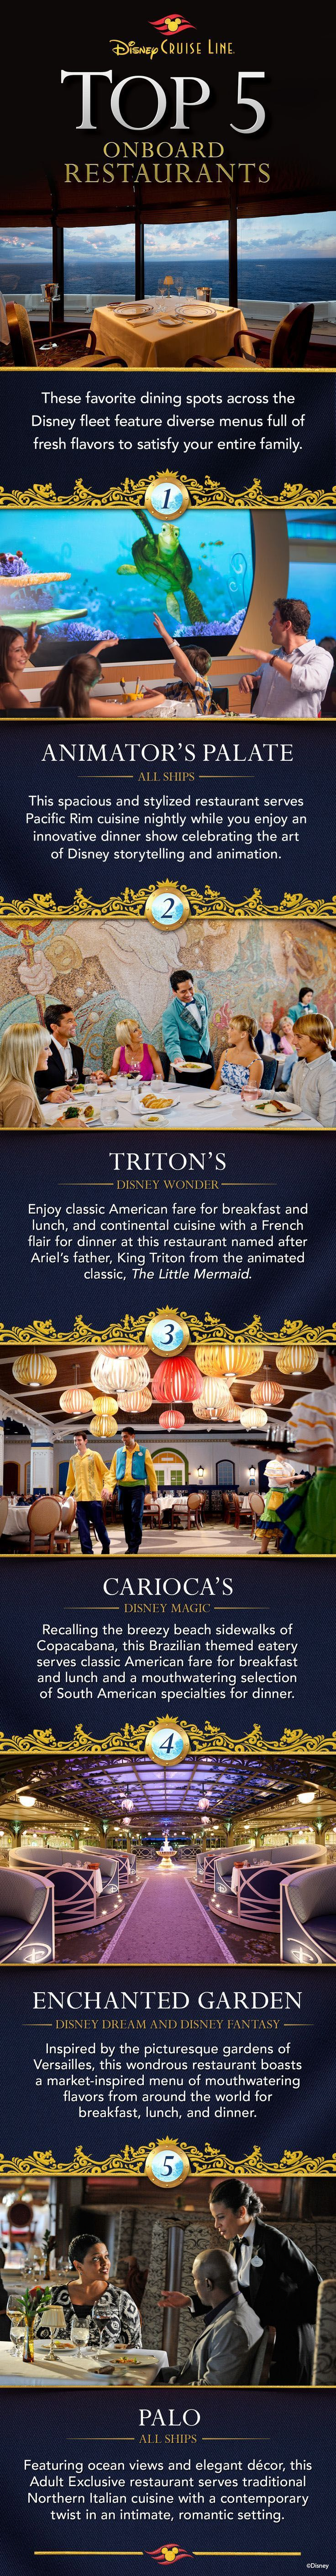 These Top 5 favorite dining spots across the Disney Cruise Line fleet feature diverse menus full of fresh flavors to satisfy your entire family.